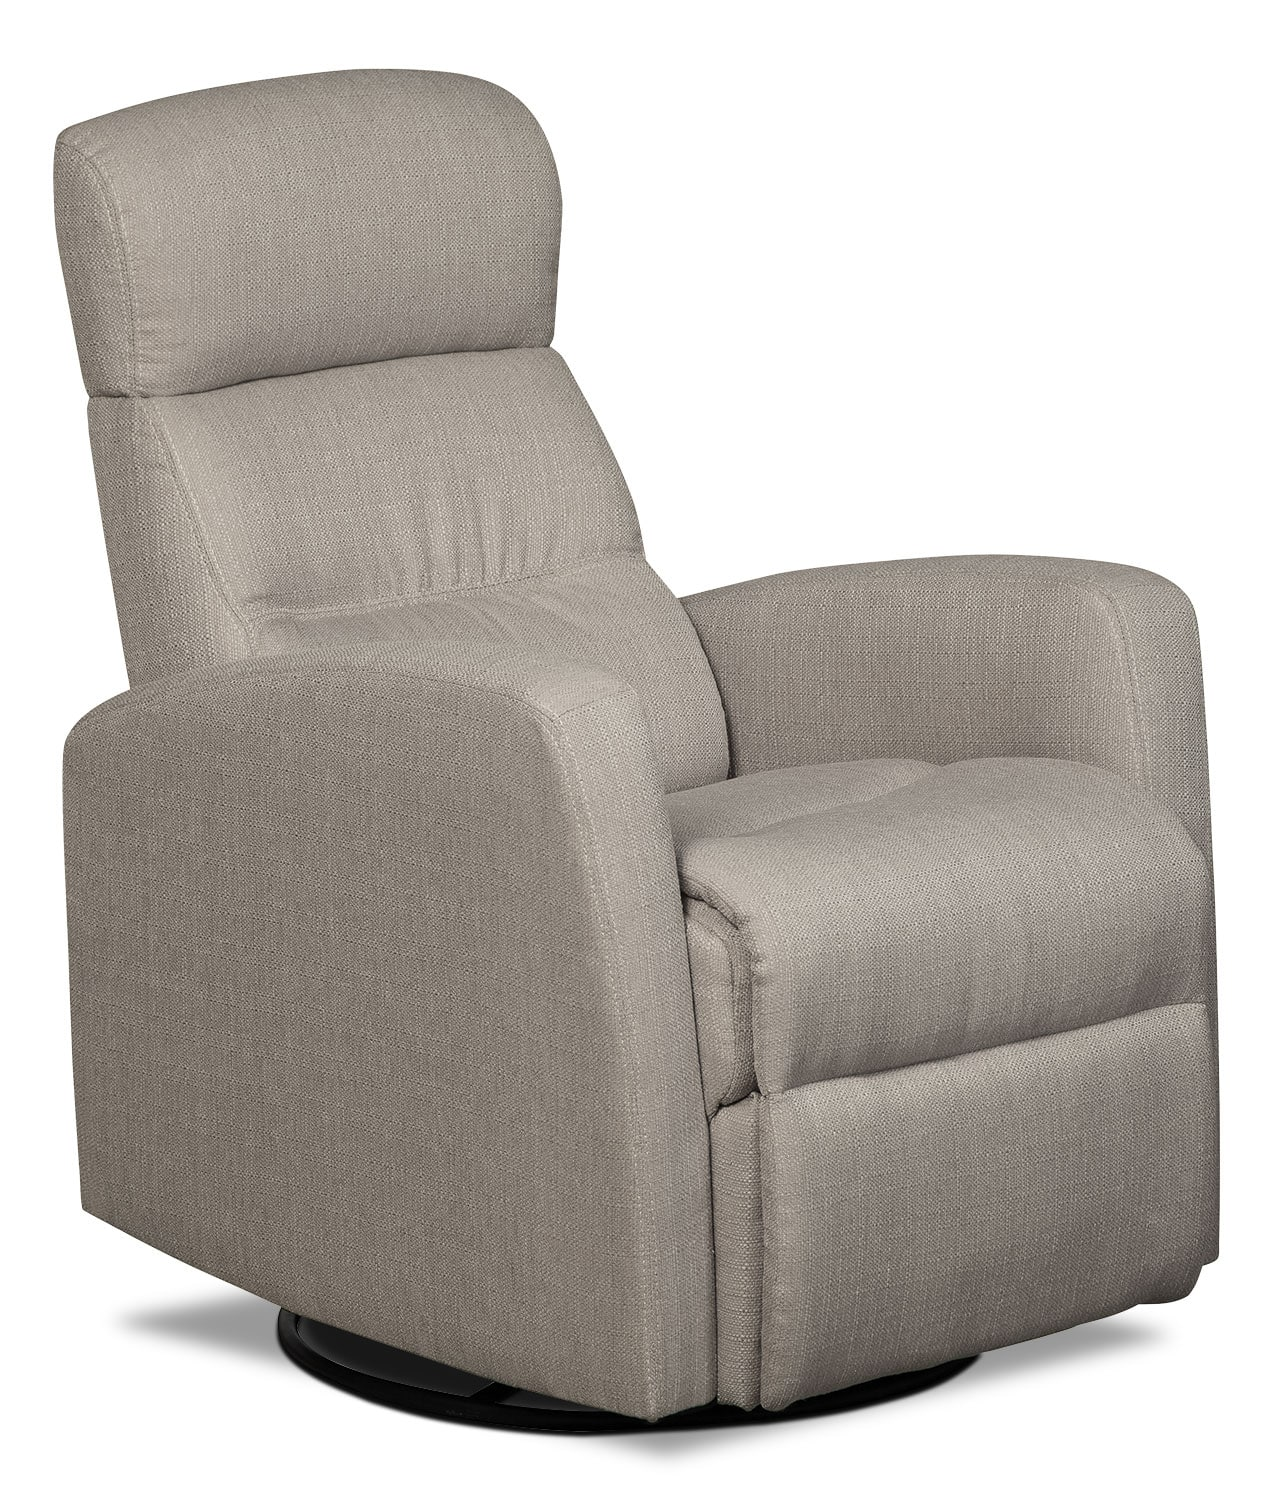 Recliner Rocking Chair Penny Linen Look Fabric Swivel Rocker Reclining Chair